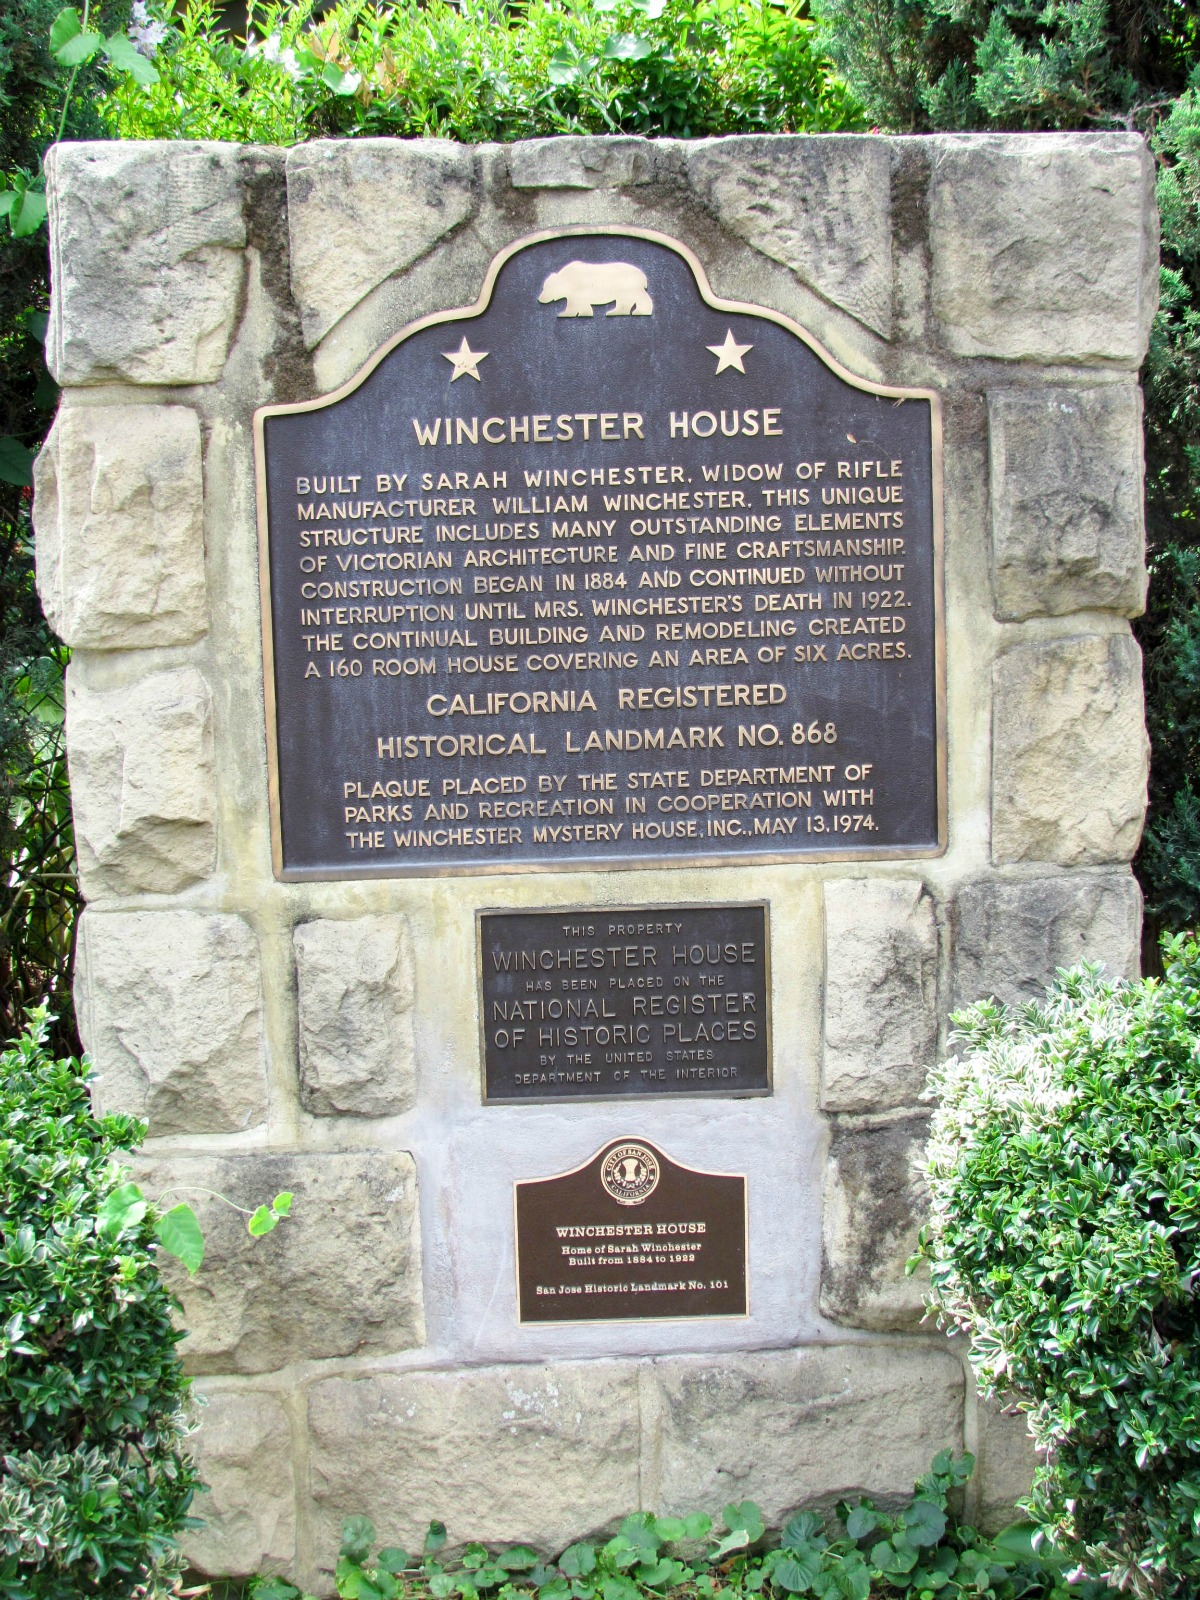 Winchester House in San Jose - a tourist spot to check out